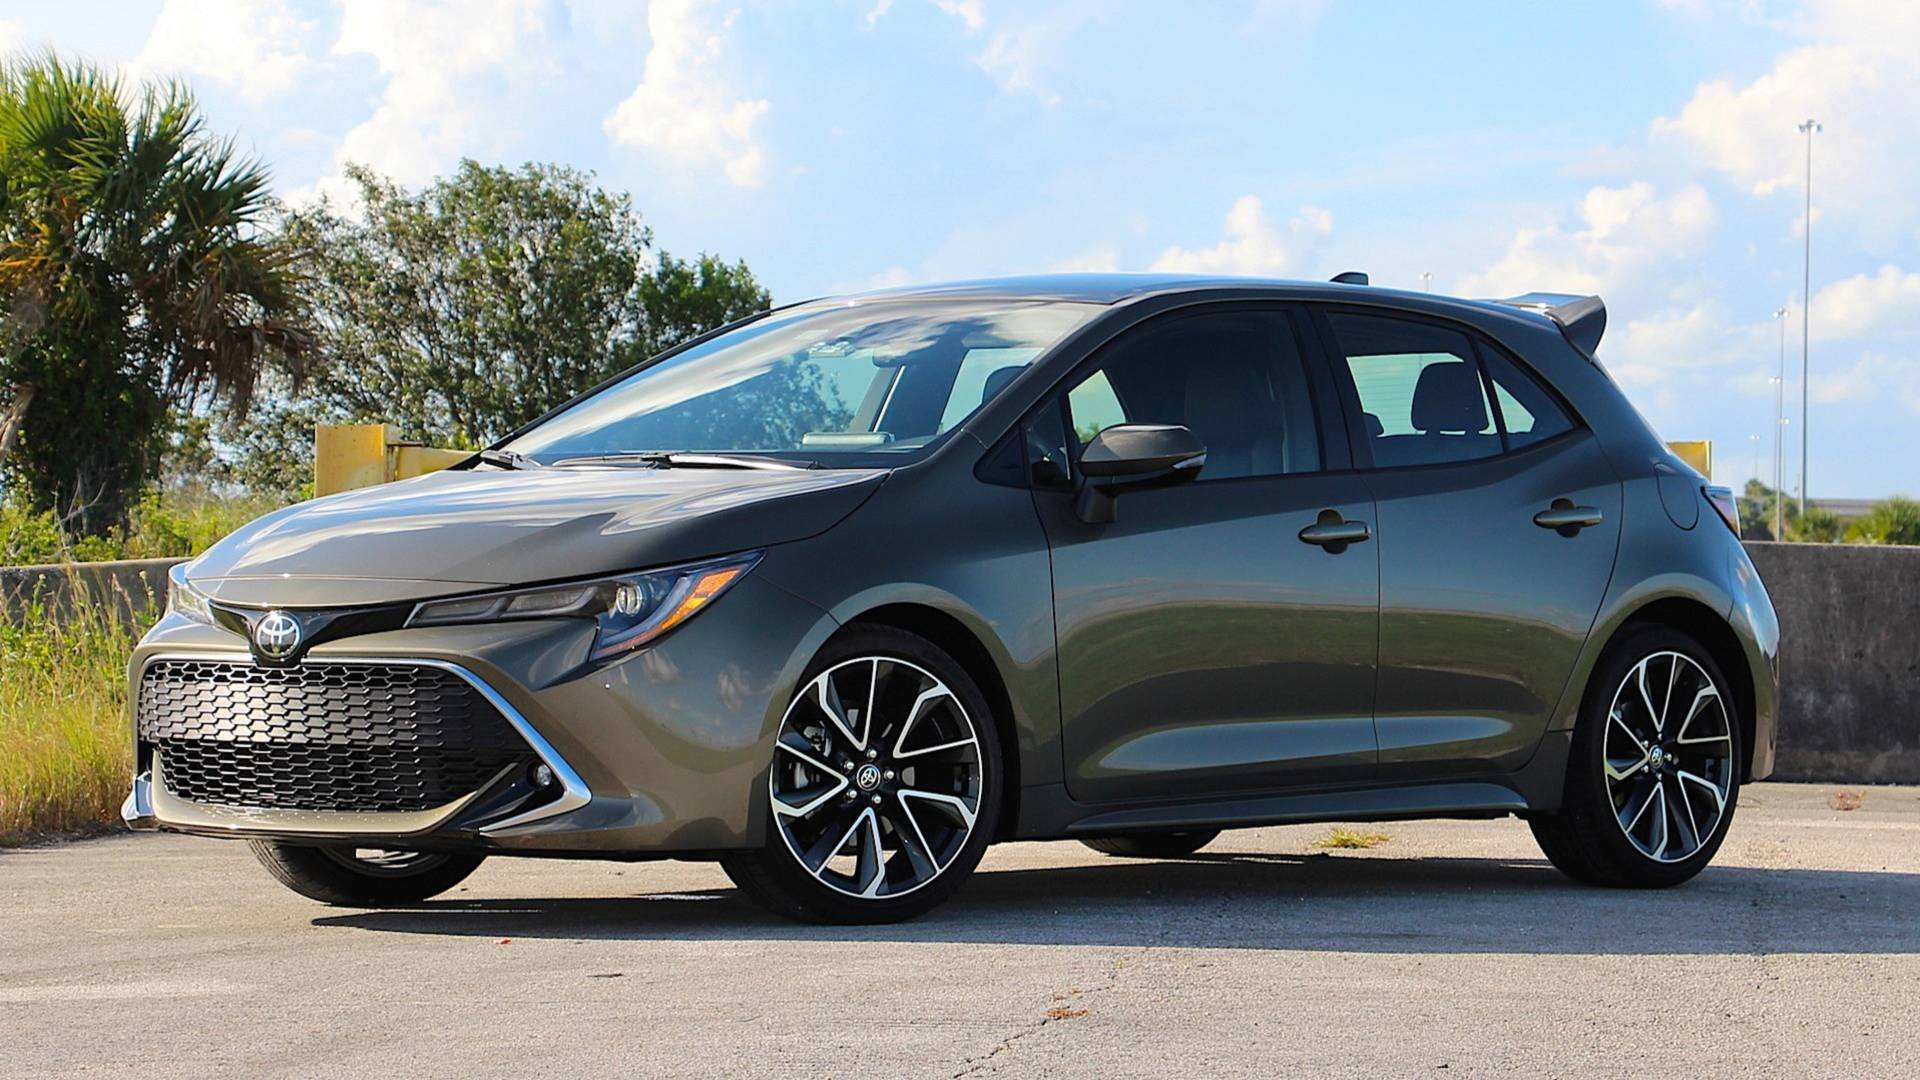 53 New Best 2019 Toyota Owners Manual Specs And Review Rumors with Best 2019 Toyota Owners Manual Specs And Review